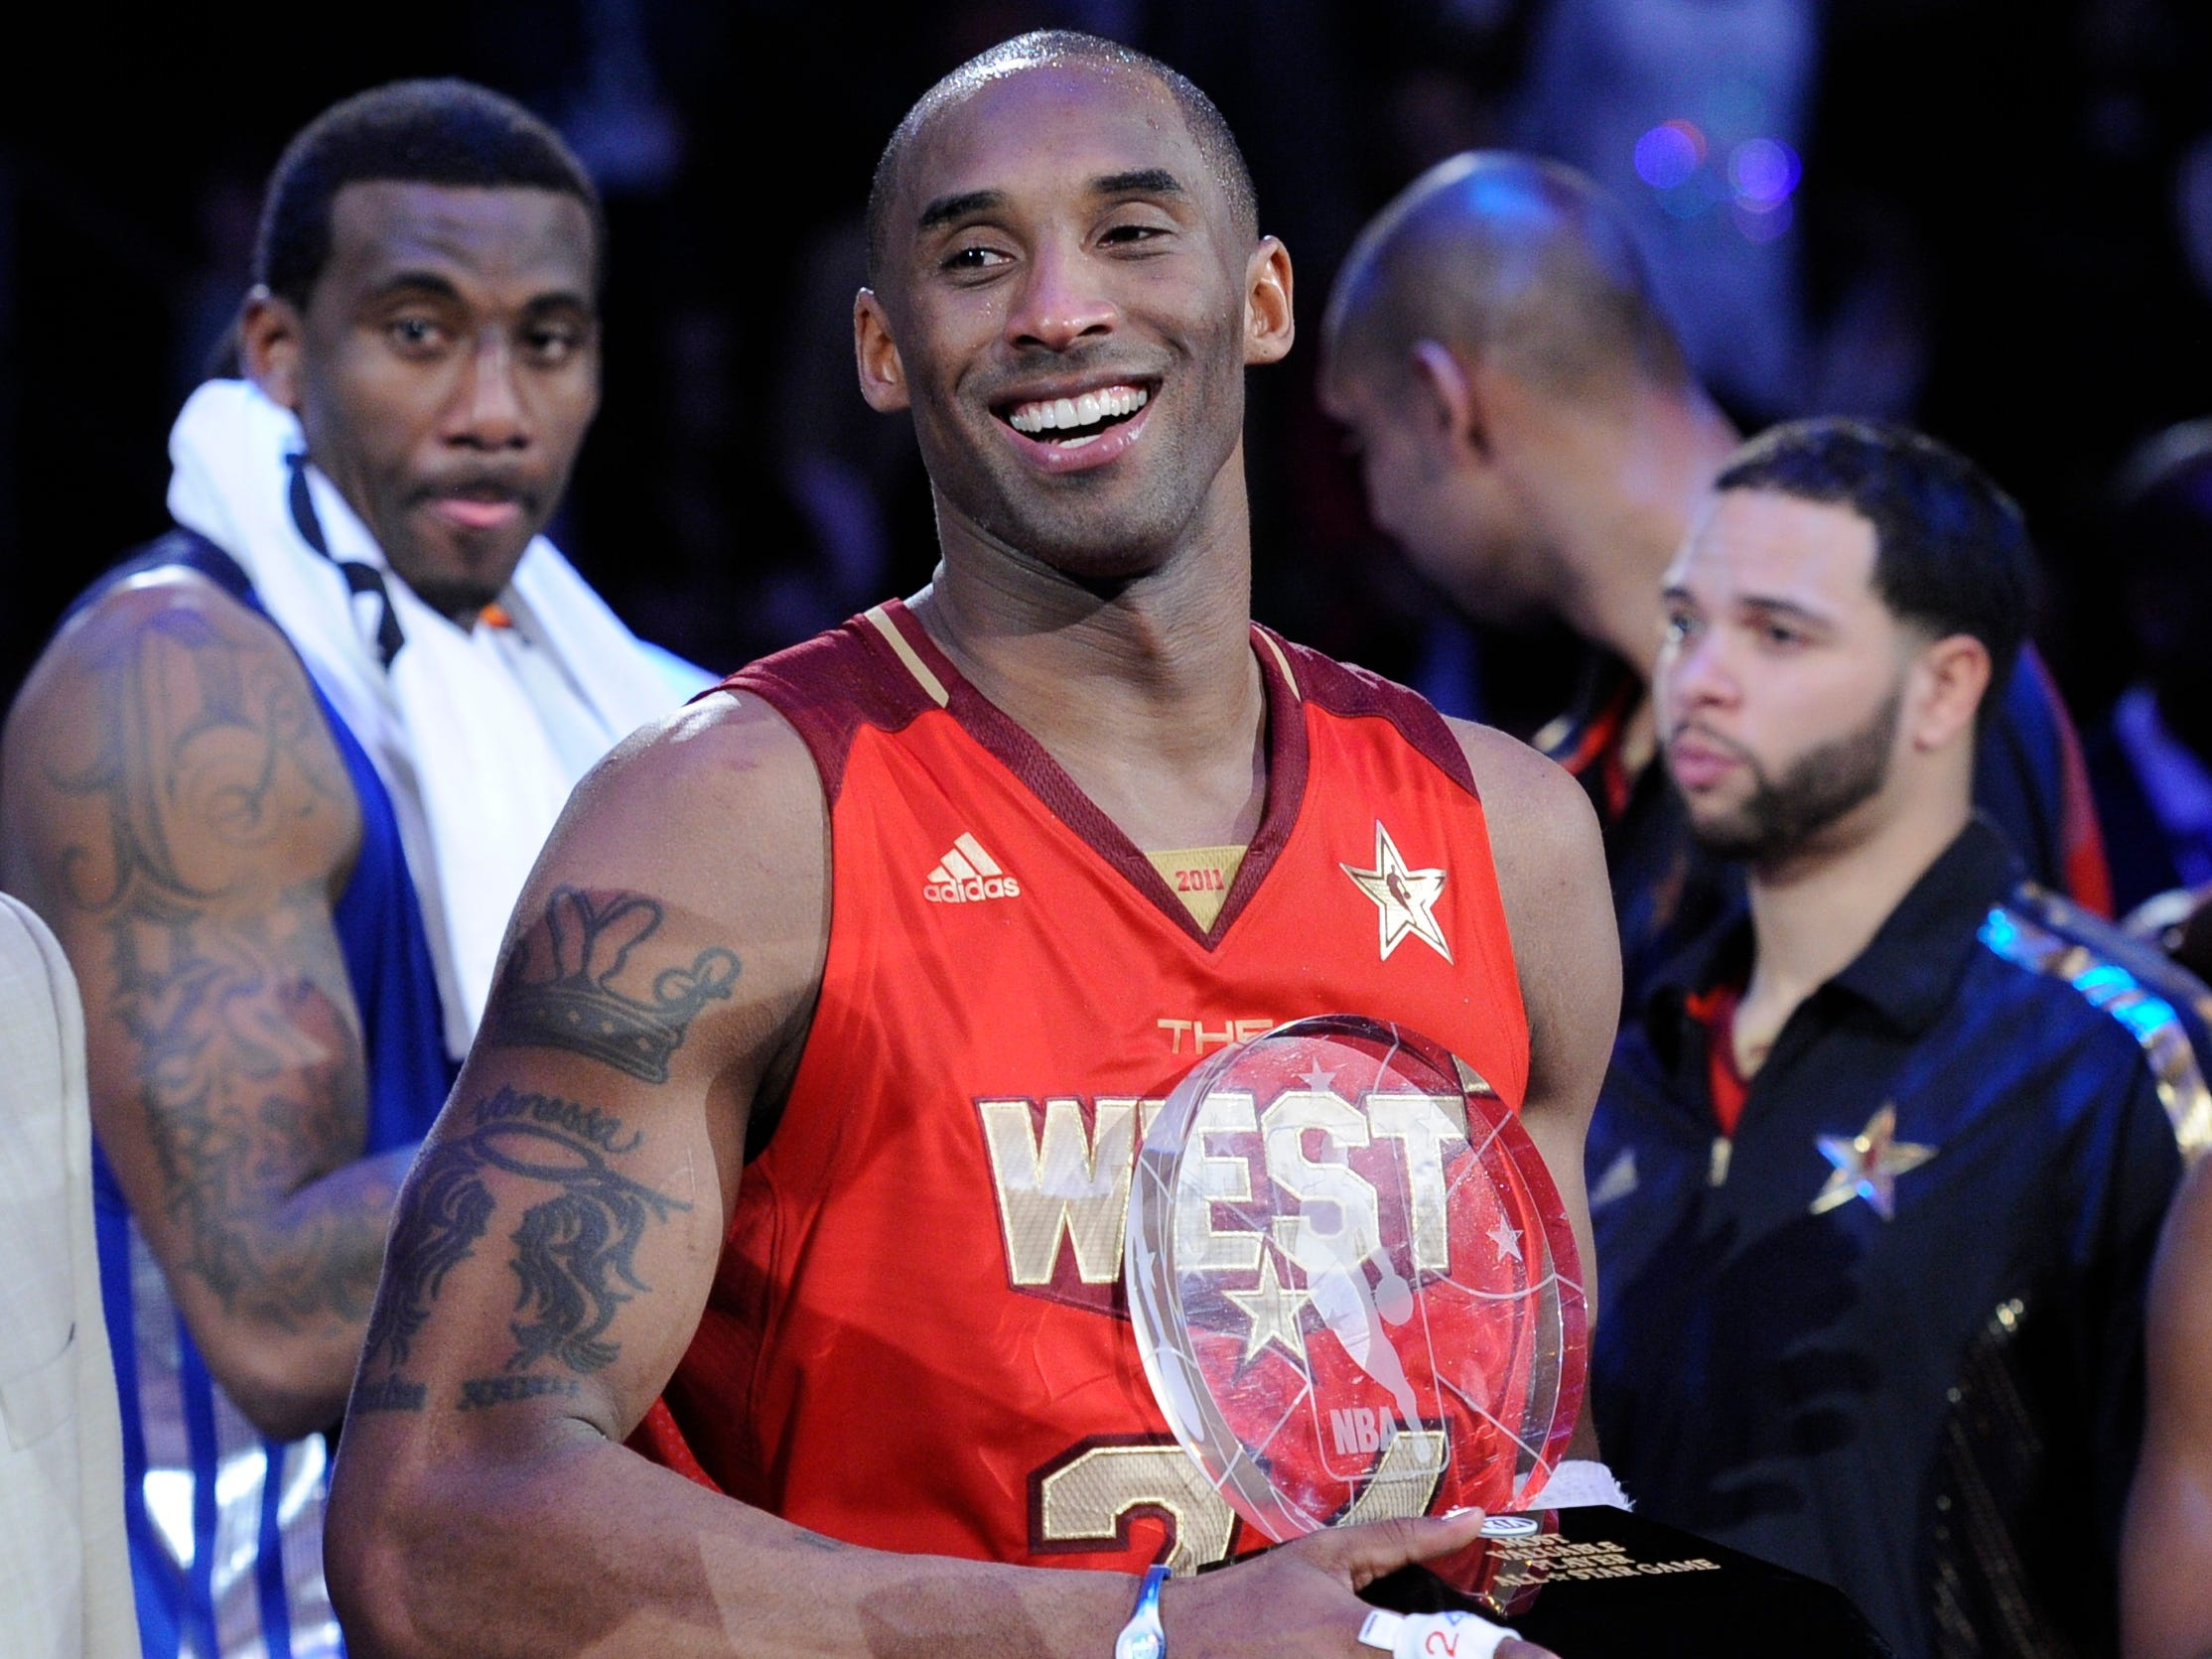 Kobe was MVP of the All-Star Game four times in his career.